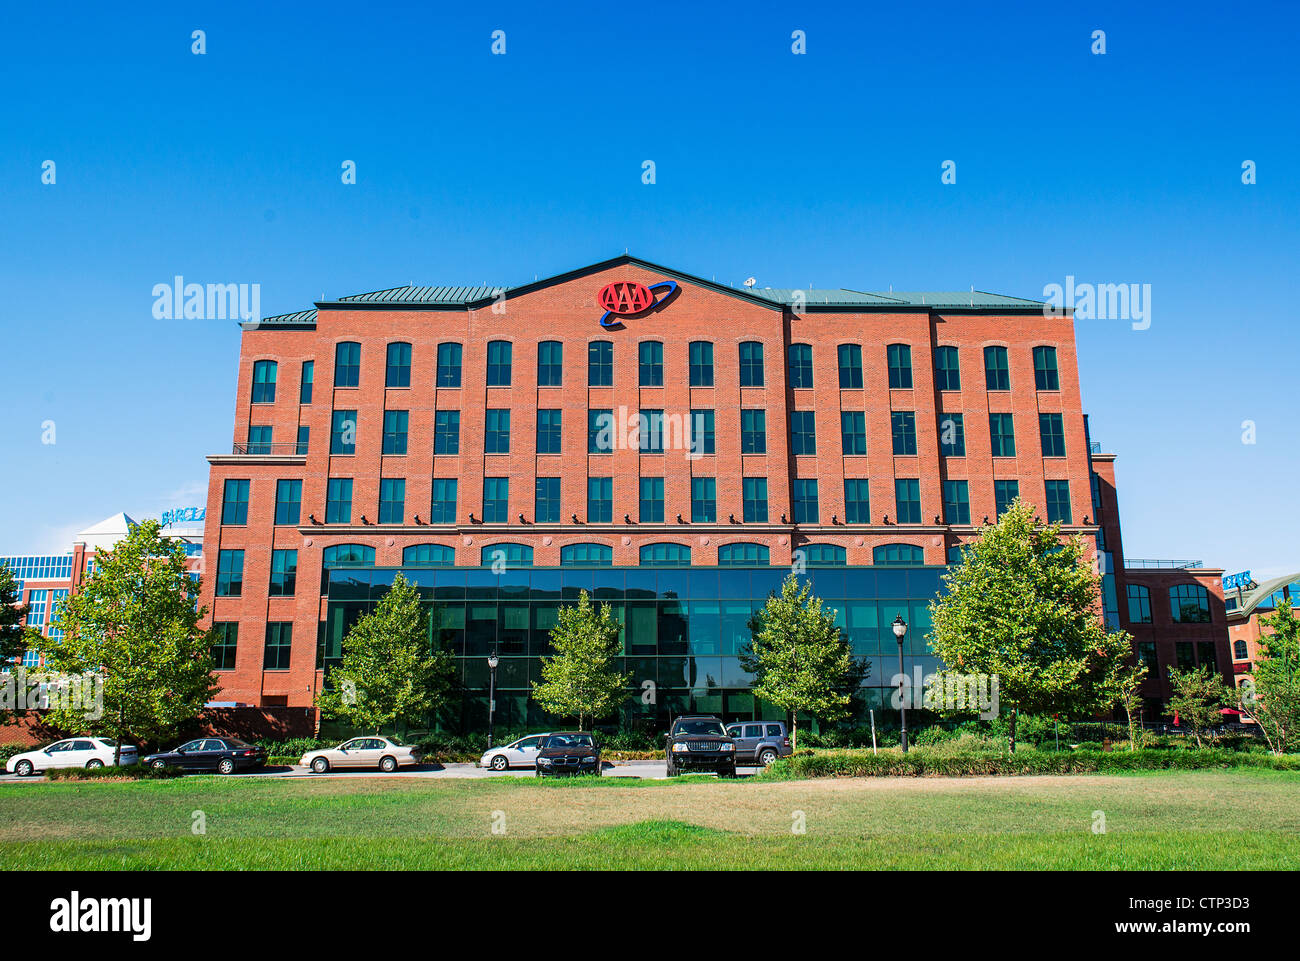 Triple A Mid -Atlantic corporate offices, Wilmington, Delaware, USA - Stock Image